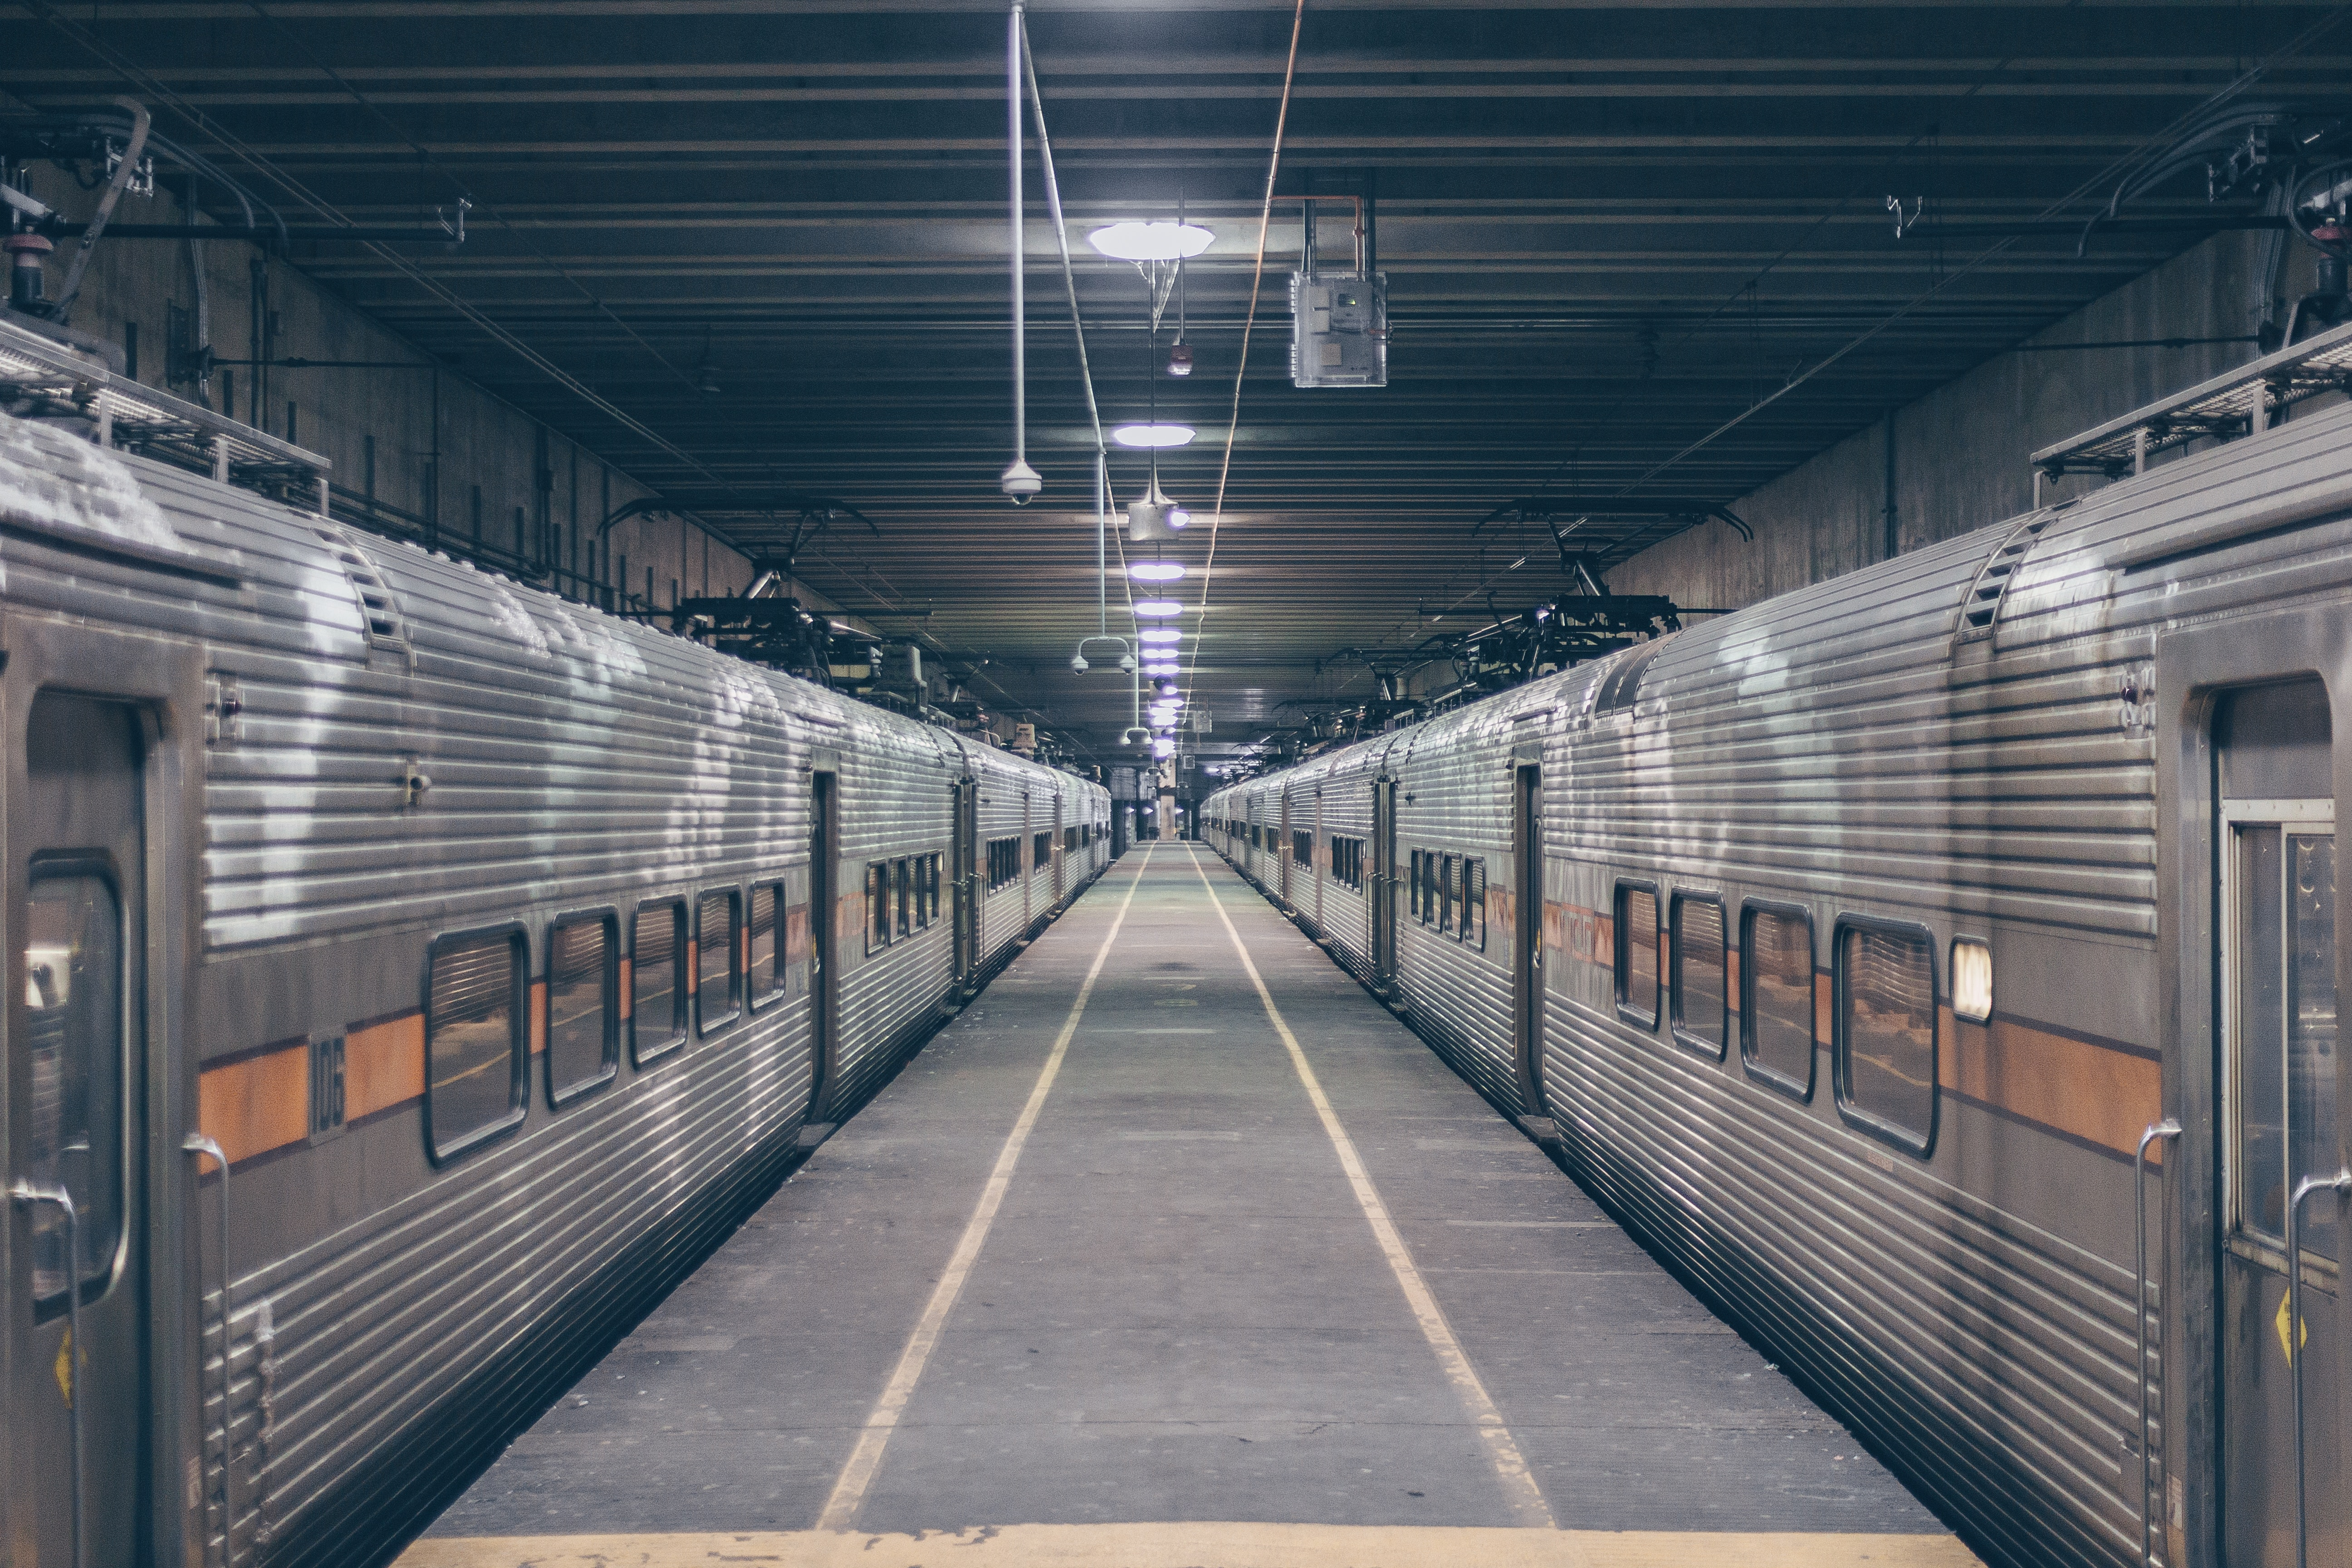 Photo Of Two Grey Trains In Station, Public transportation, Railway, Railway station, Station, HQ Photo